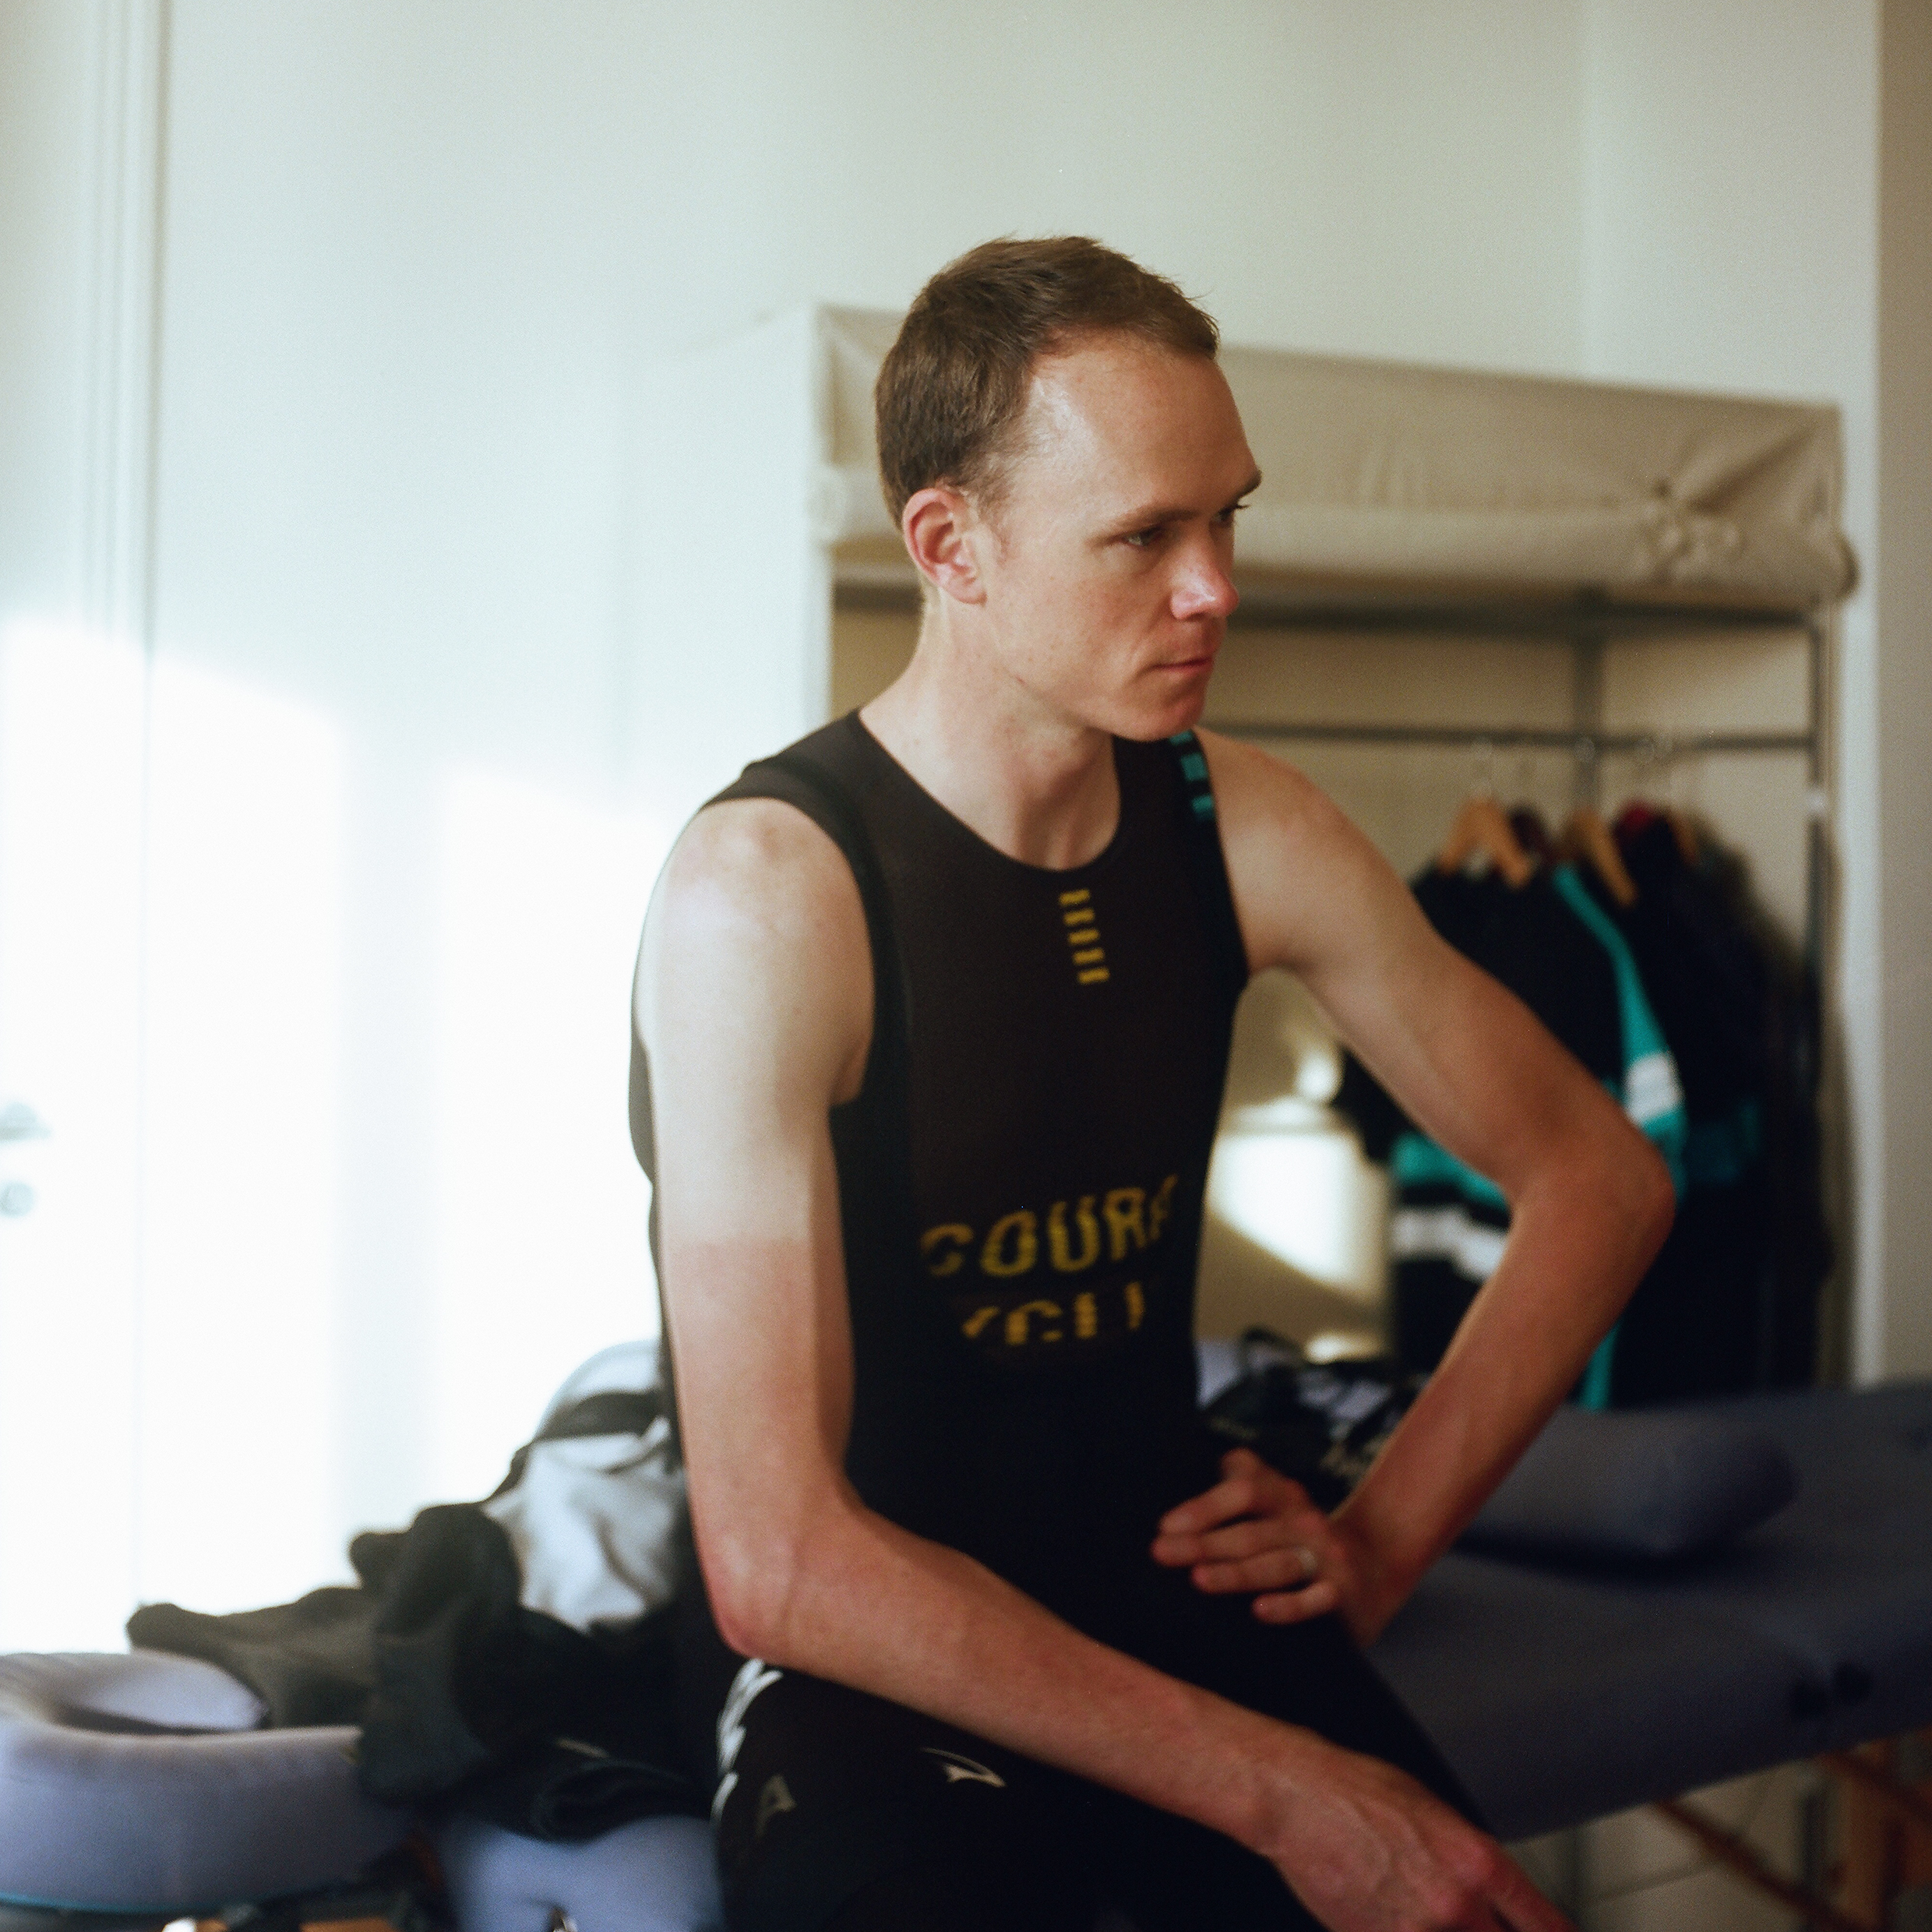 CHRIS FROOME MASSAGE TABLE.jpg